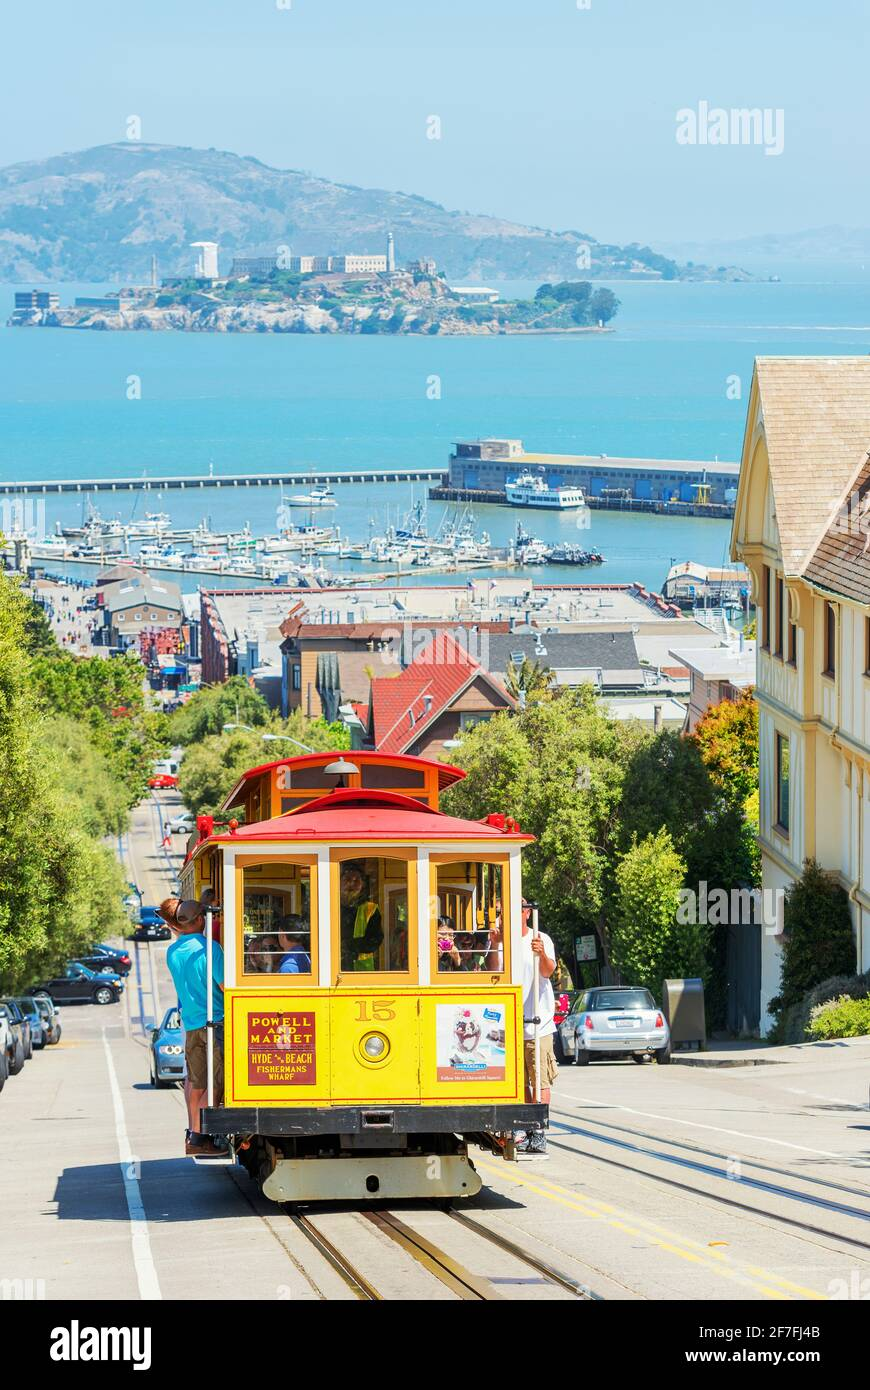 Powell-Hyde line cable car with Alcatraz Island in the background, San Francisco, California, United States of America, North America Stock Photo